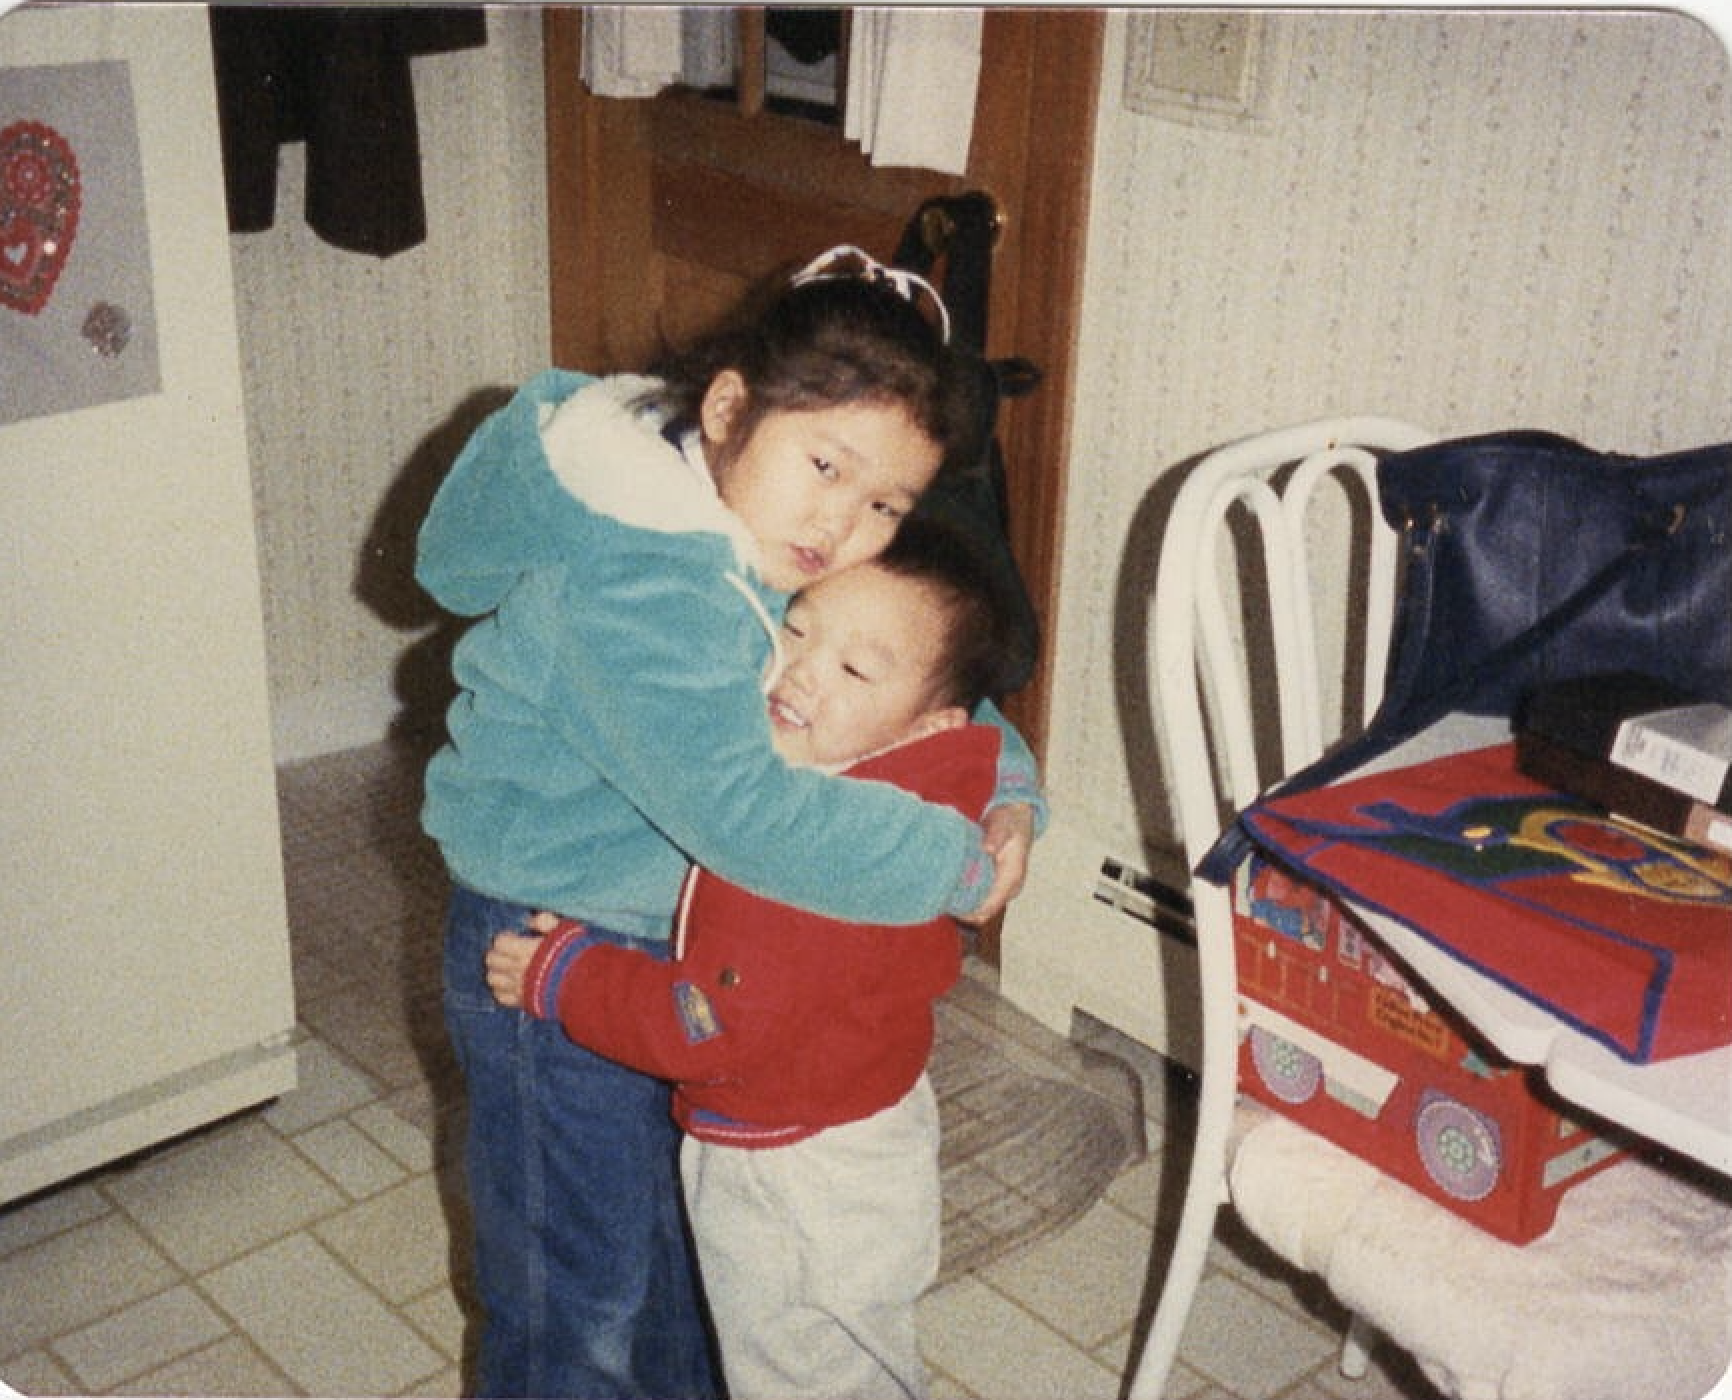 Forcing Chris to hug me.  He ran away in the next frame.  My little bro is now bigger than me.  Love him so much.